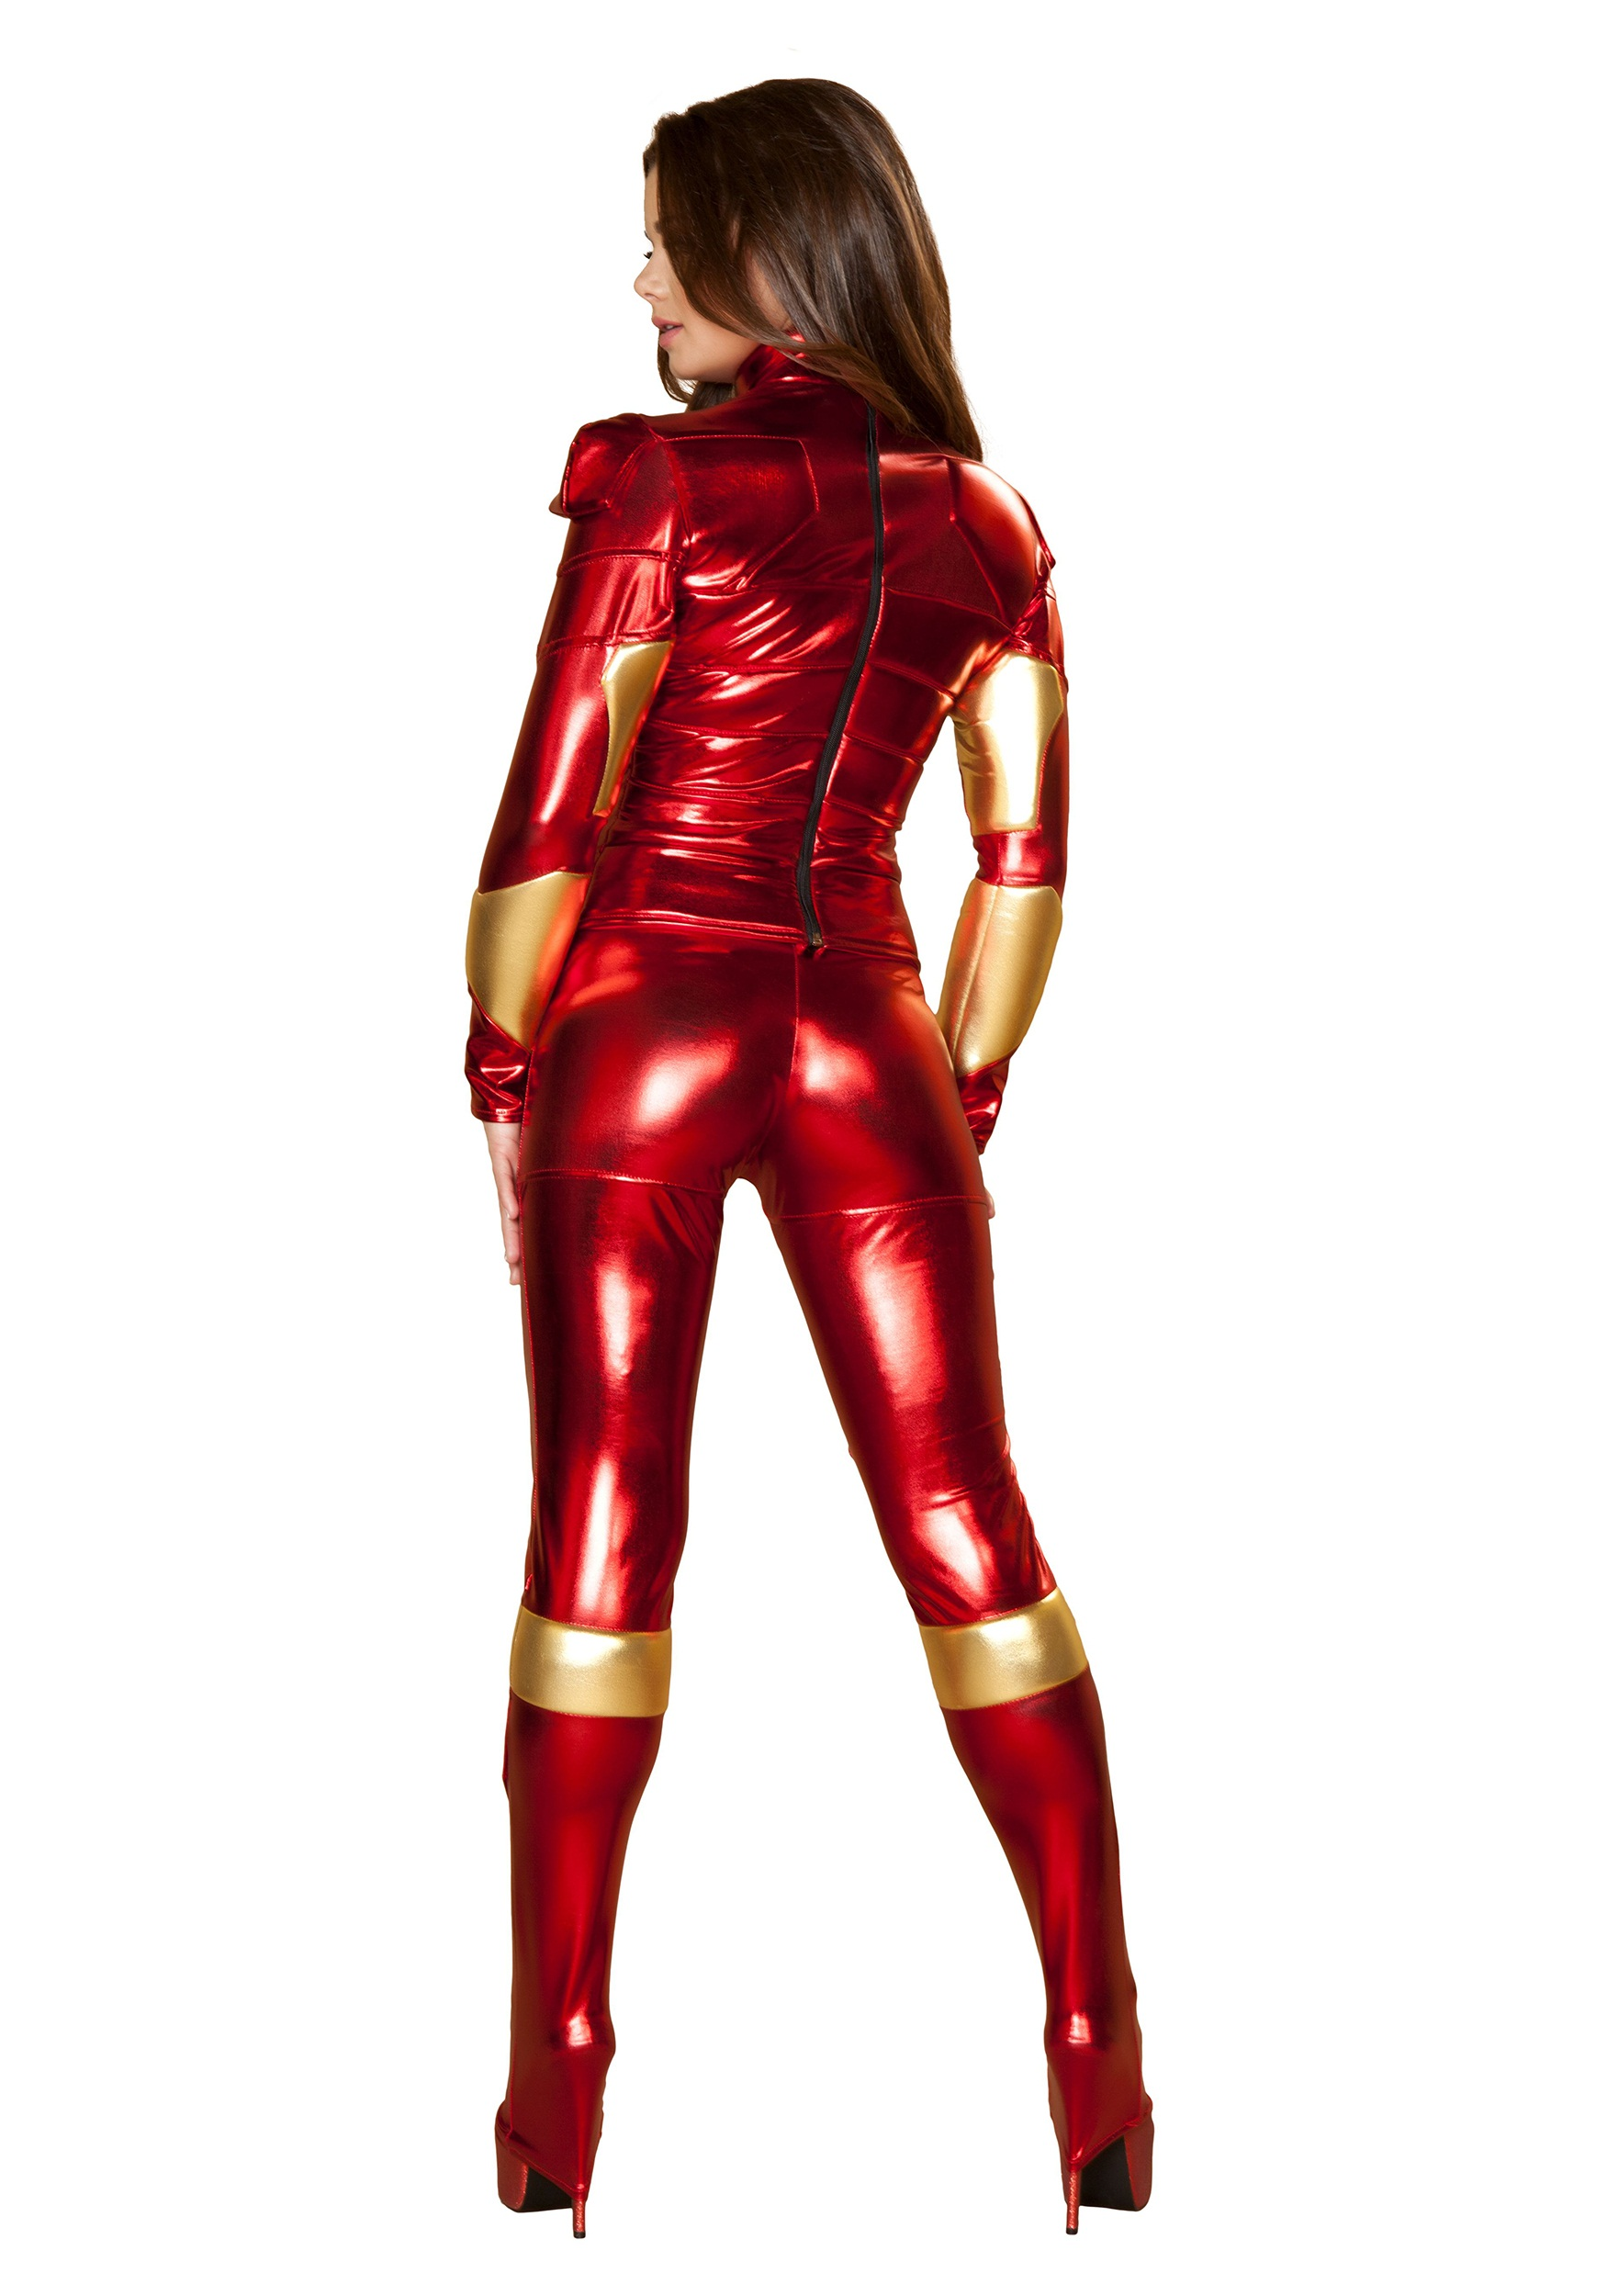 Womens Hot Metal Superhero Costume allz